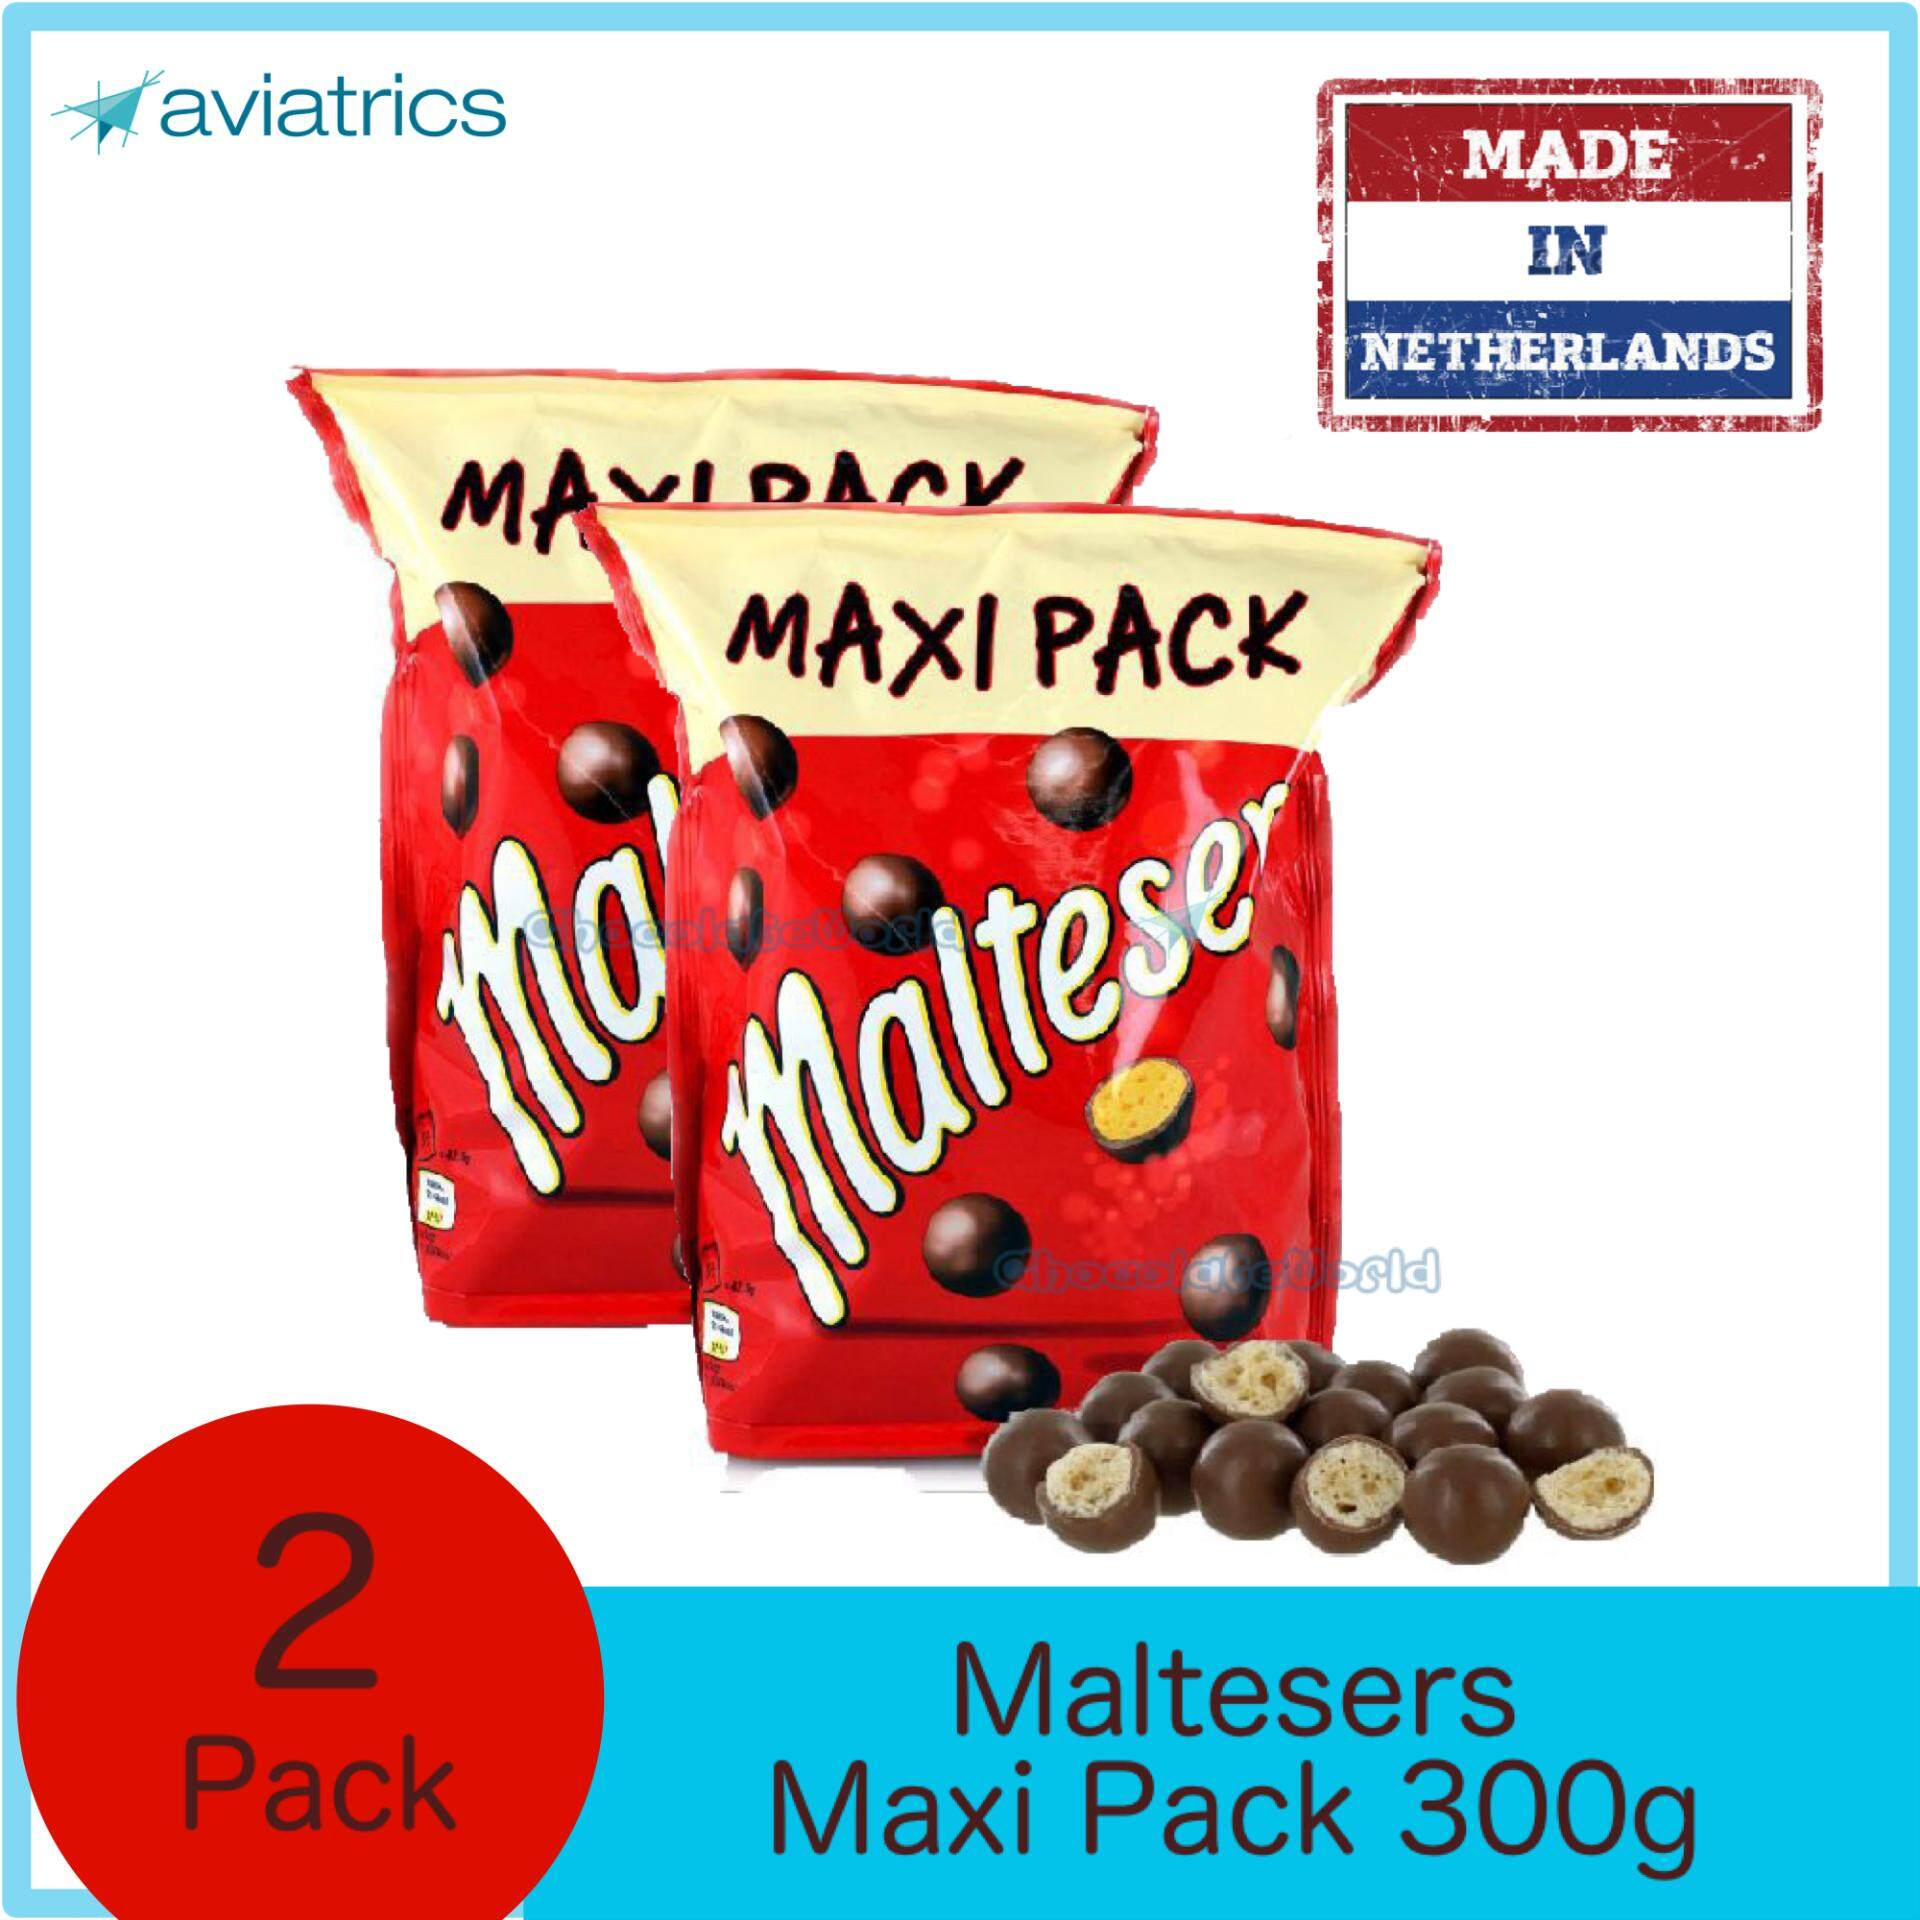 Maltesers MAXI PACK 2 X 300g (Made in Netherlands)